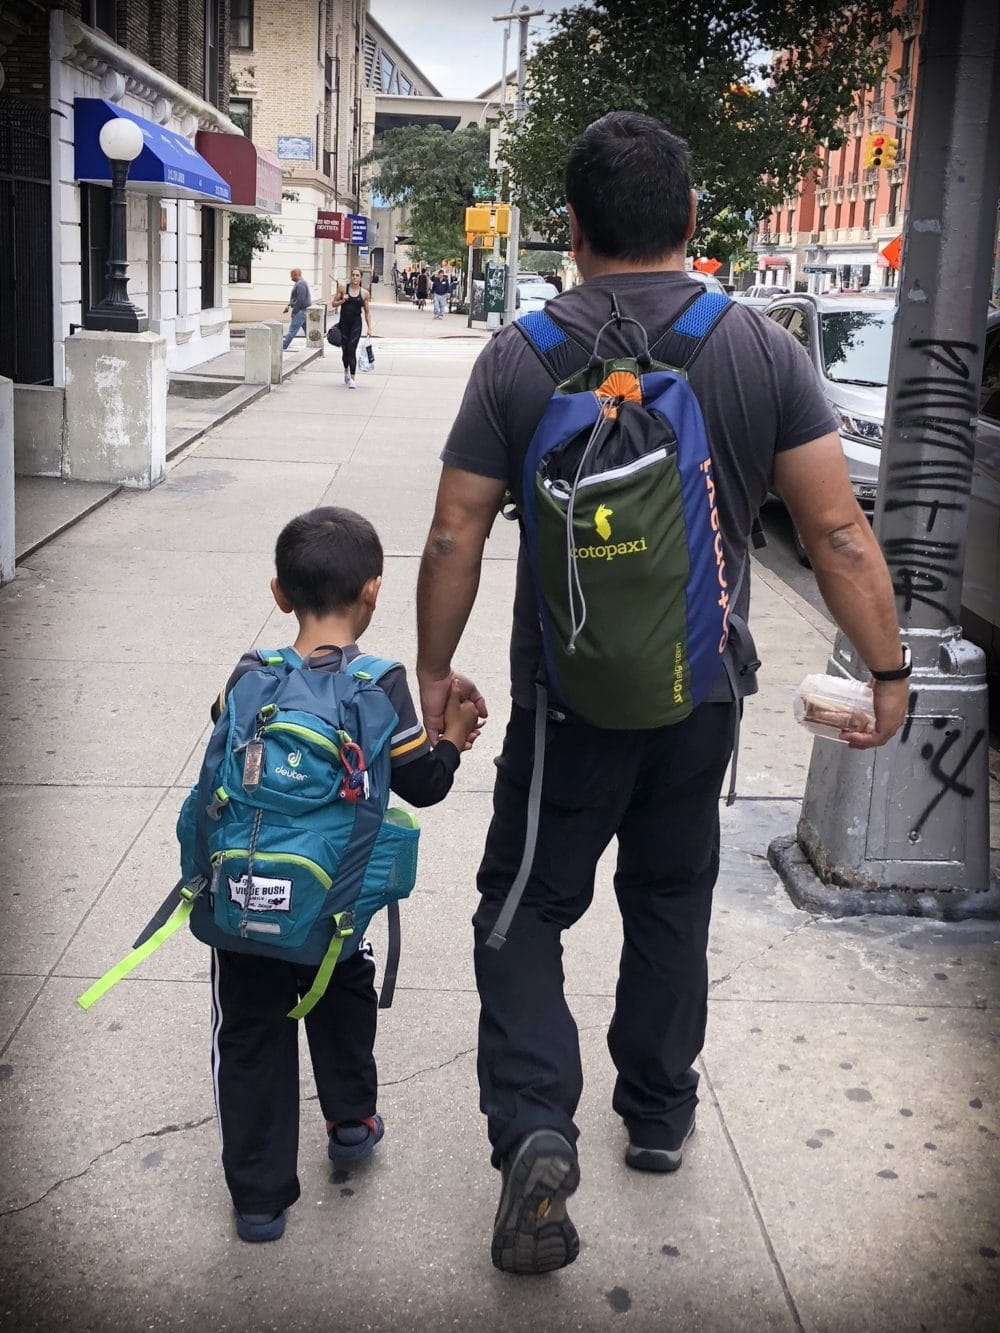 Backpacks are essential travel items for family travel